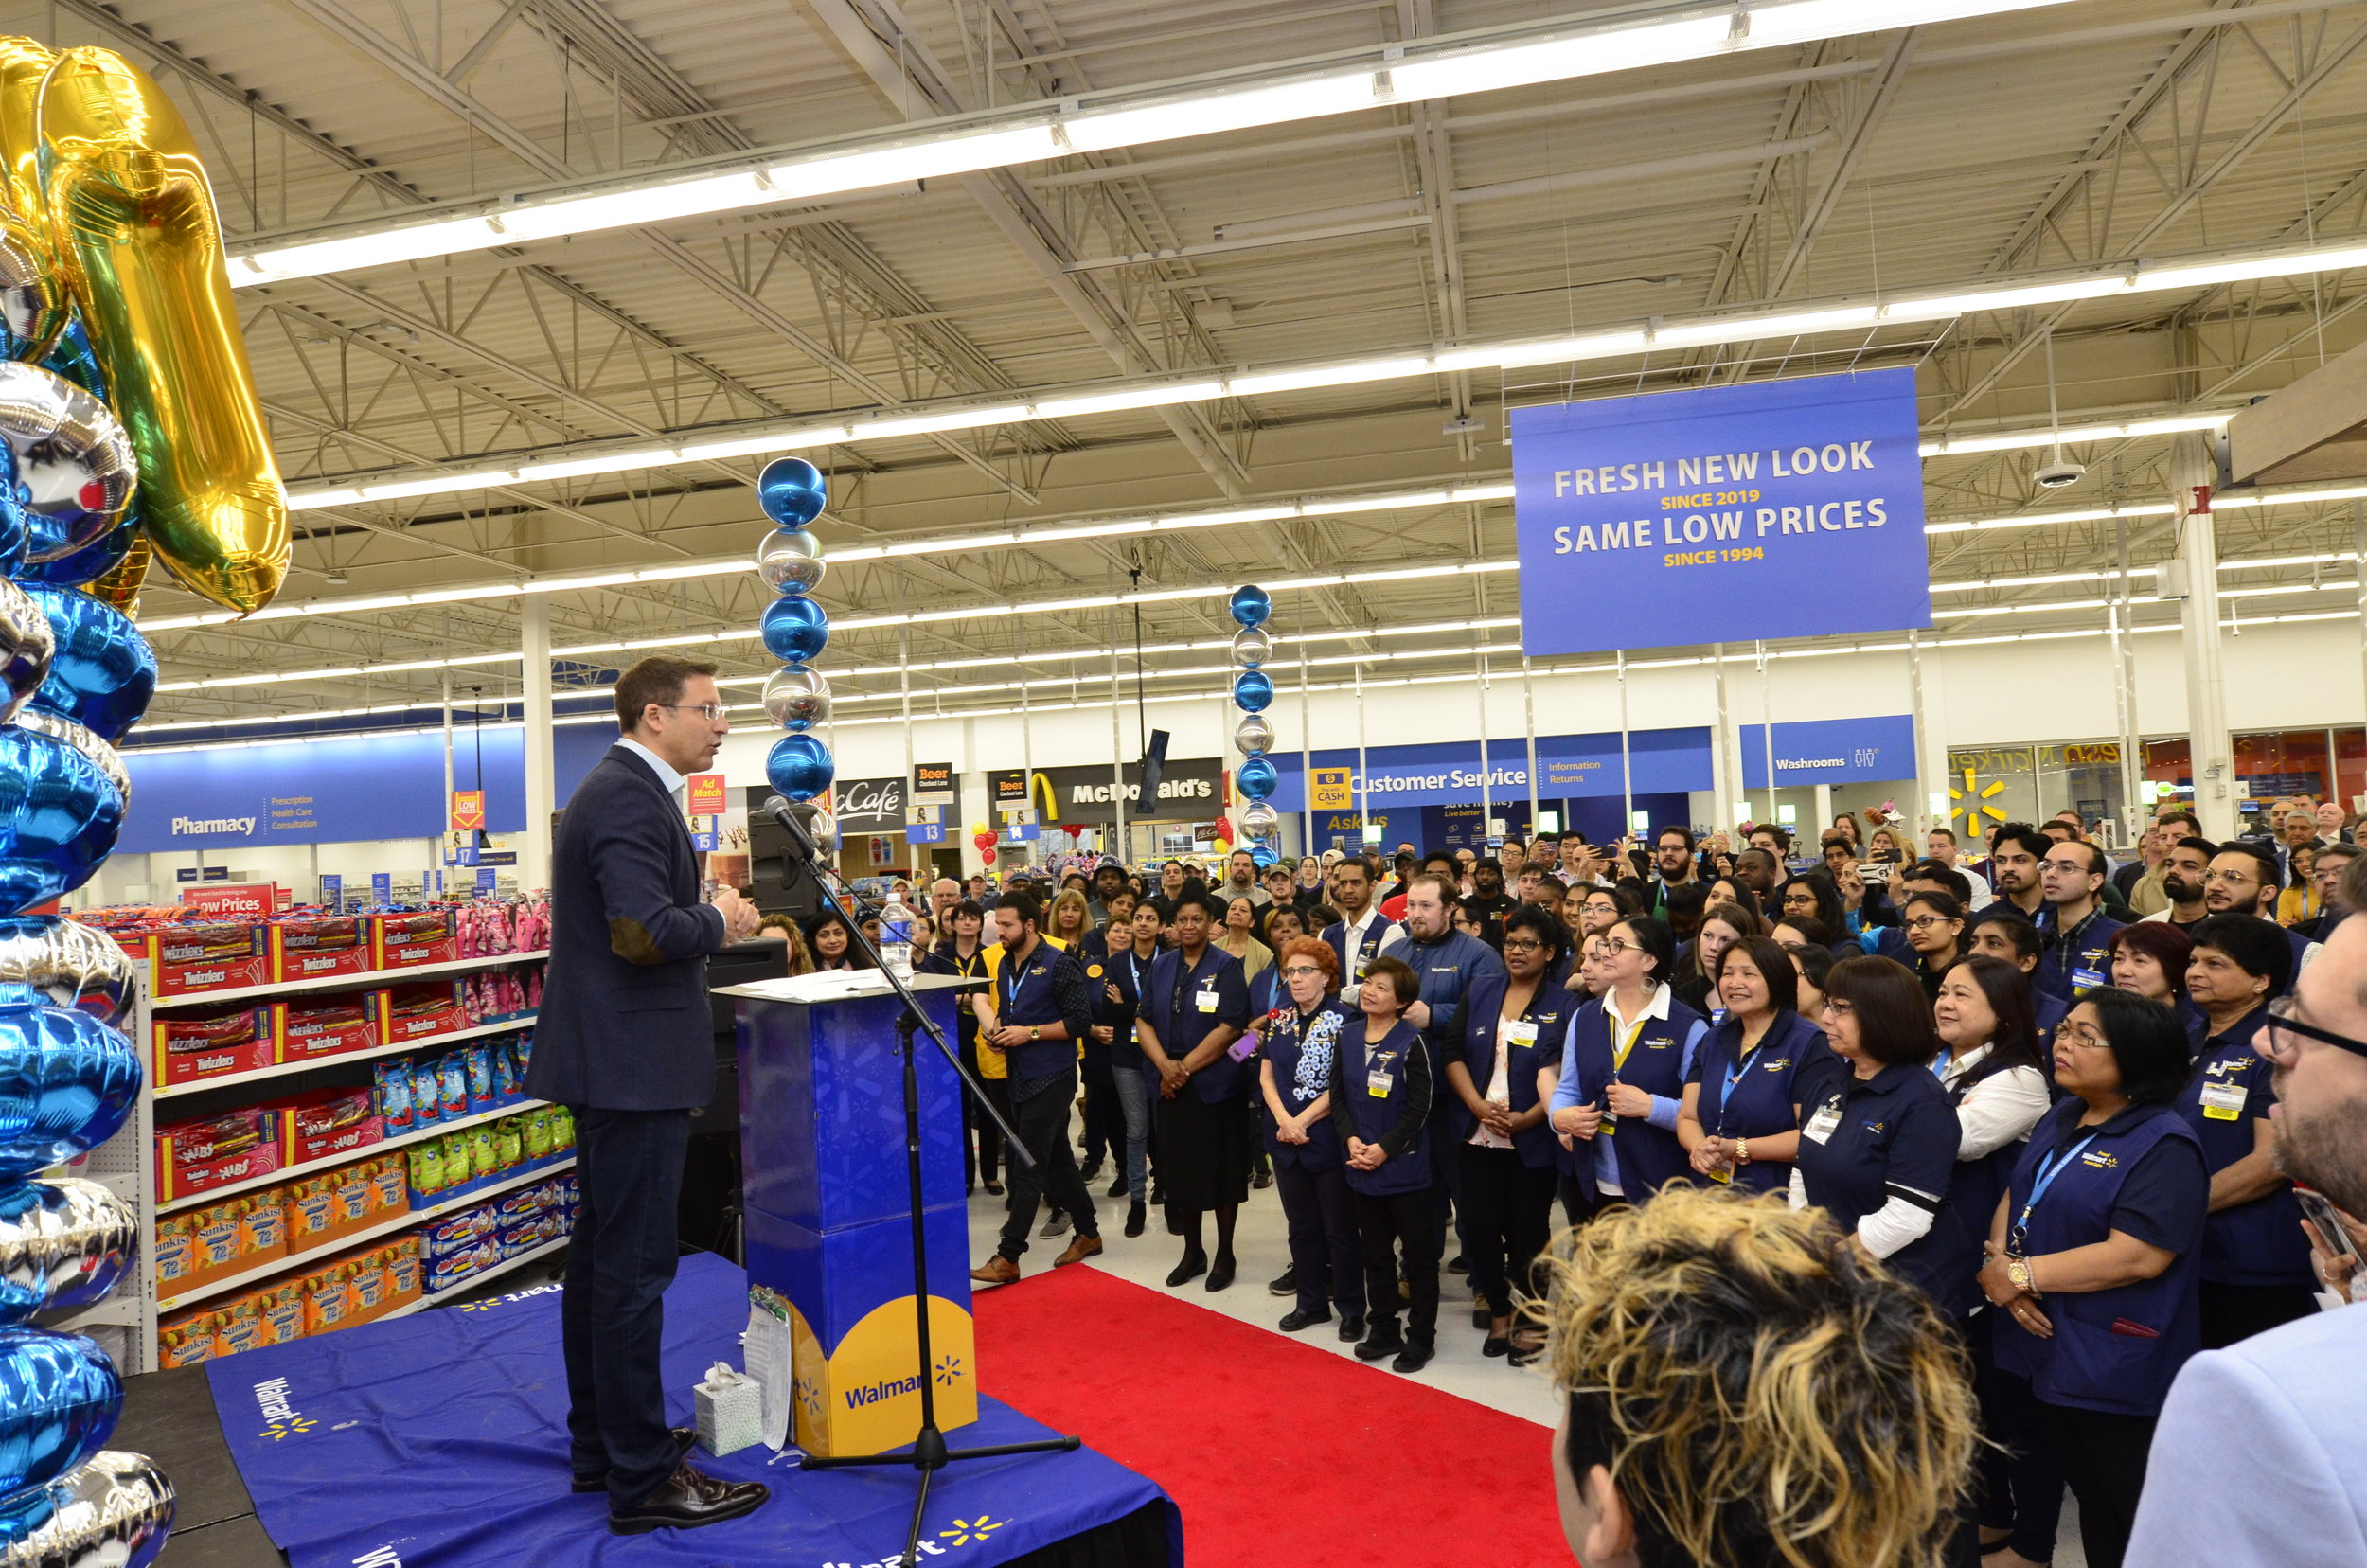 Lee Tappenden Speaking to Stockyards Supercentre Employees at Grand Opening of Urban Concept. Photo: Walmart Canada